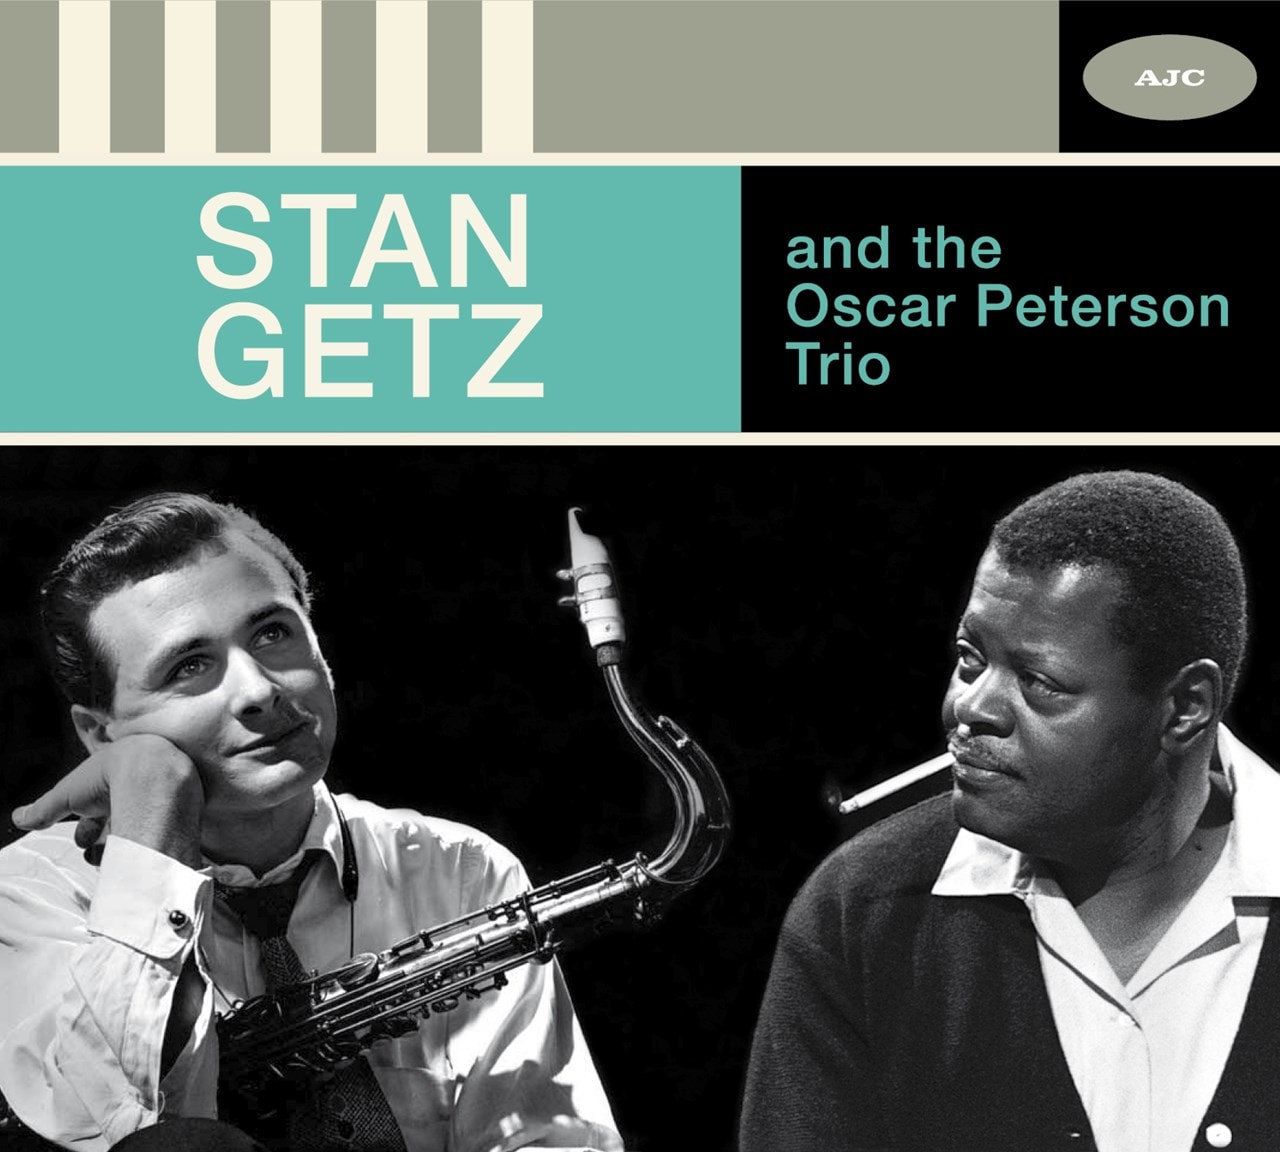 Stan Getz and the Oscar Peterson Trio - 1